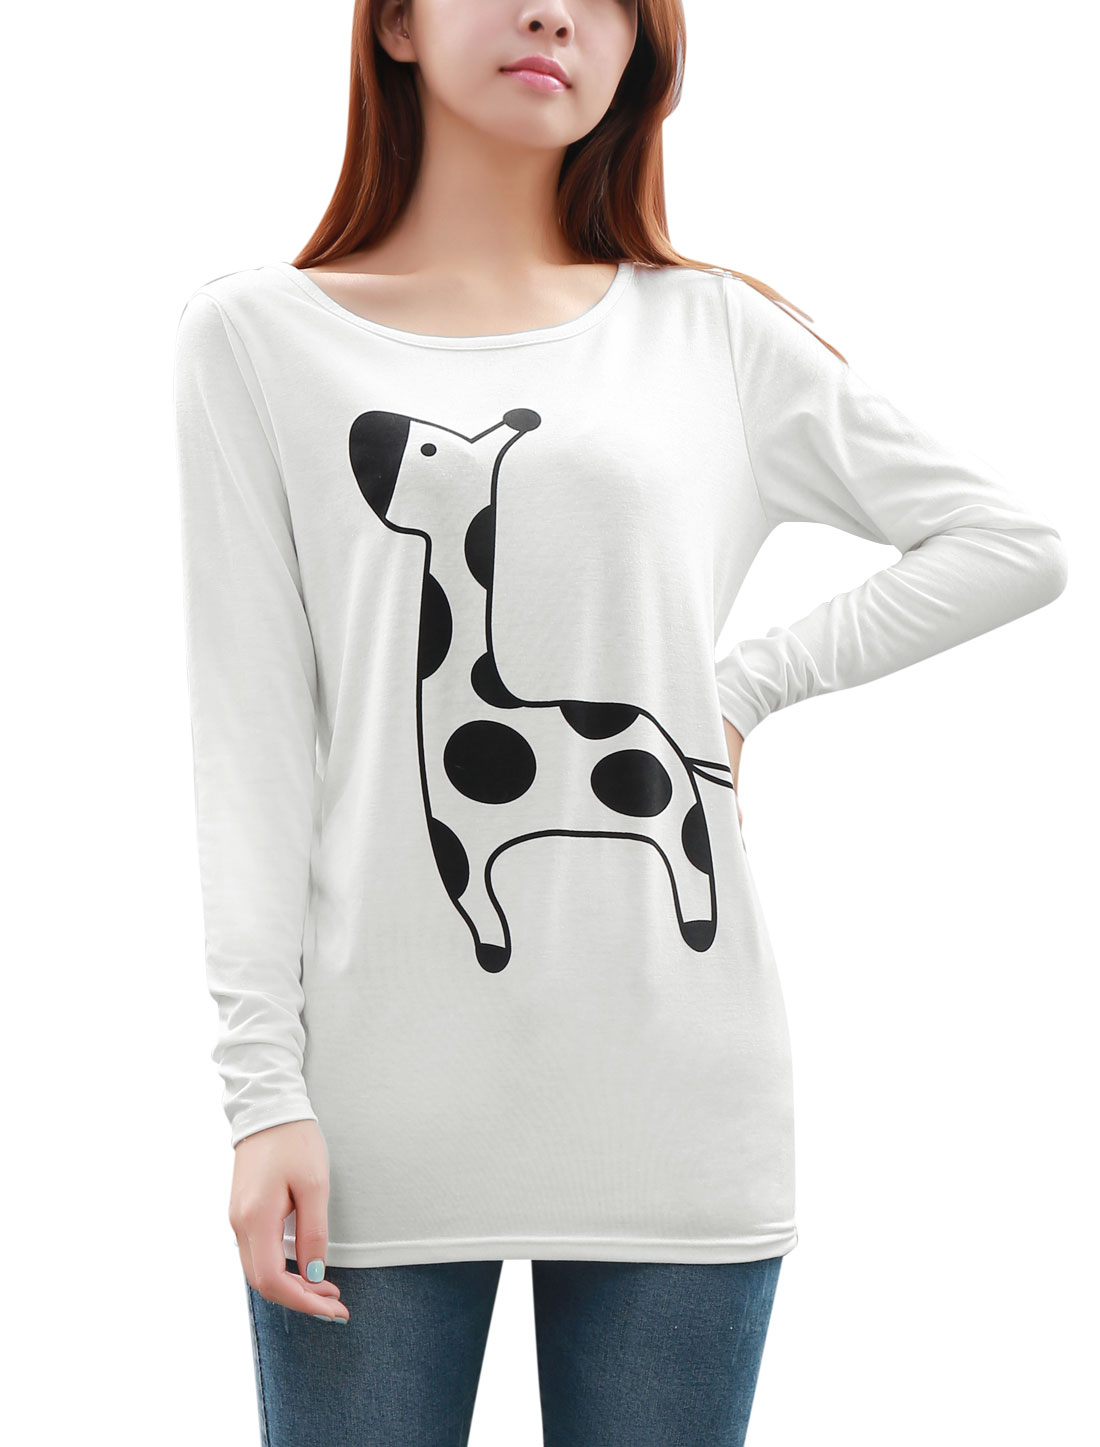 Lady White Long Sleeve Cartoon Pattern Design Tunic Shirt L